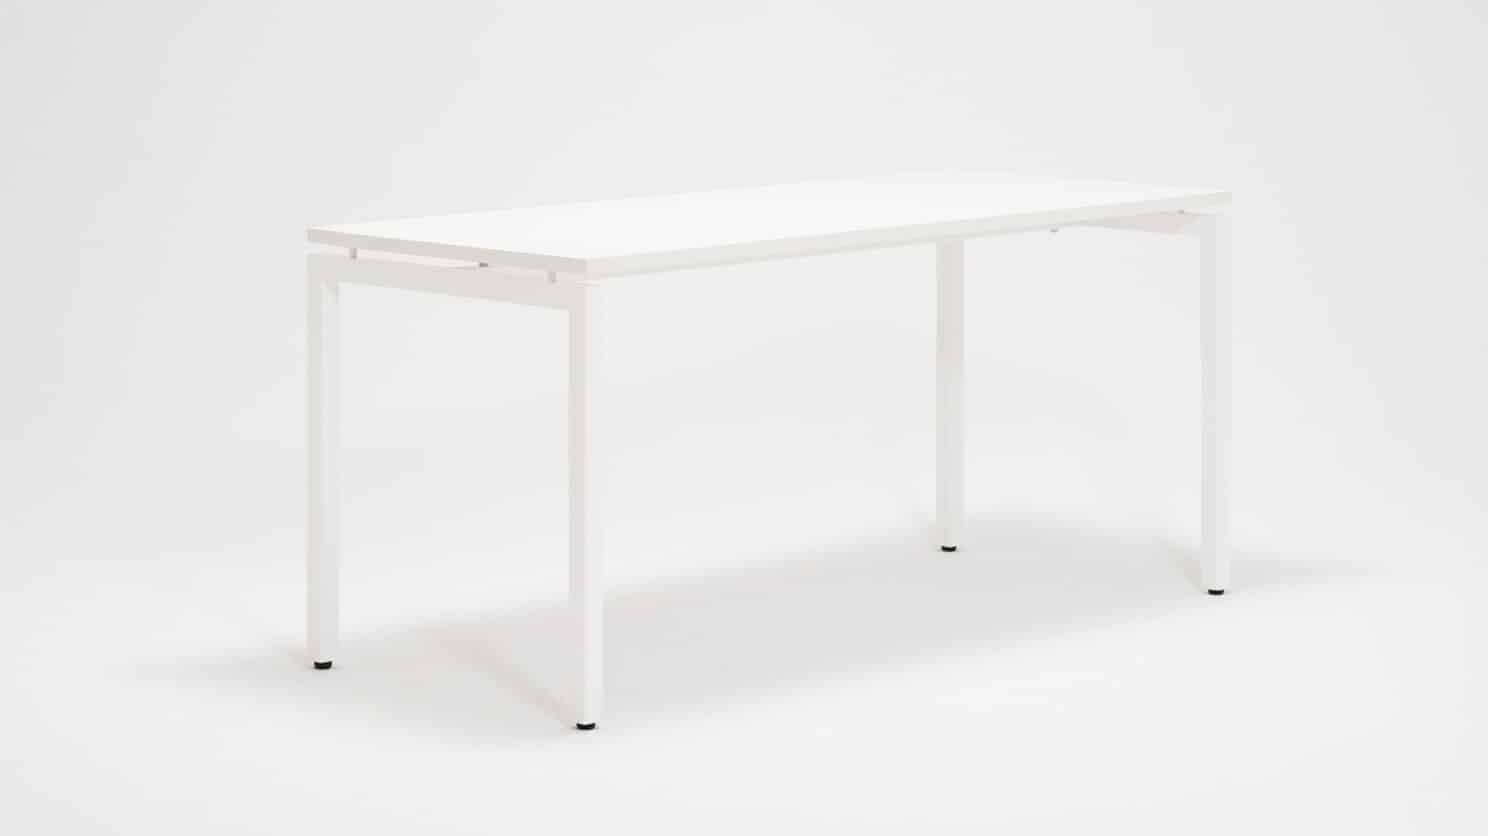 7220 100 par 2 desks novah 63 desk white top white base corner 01